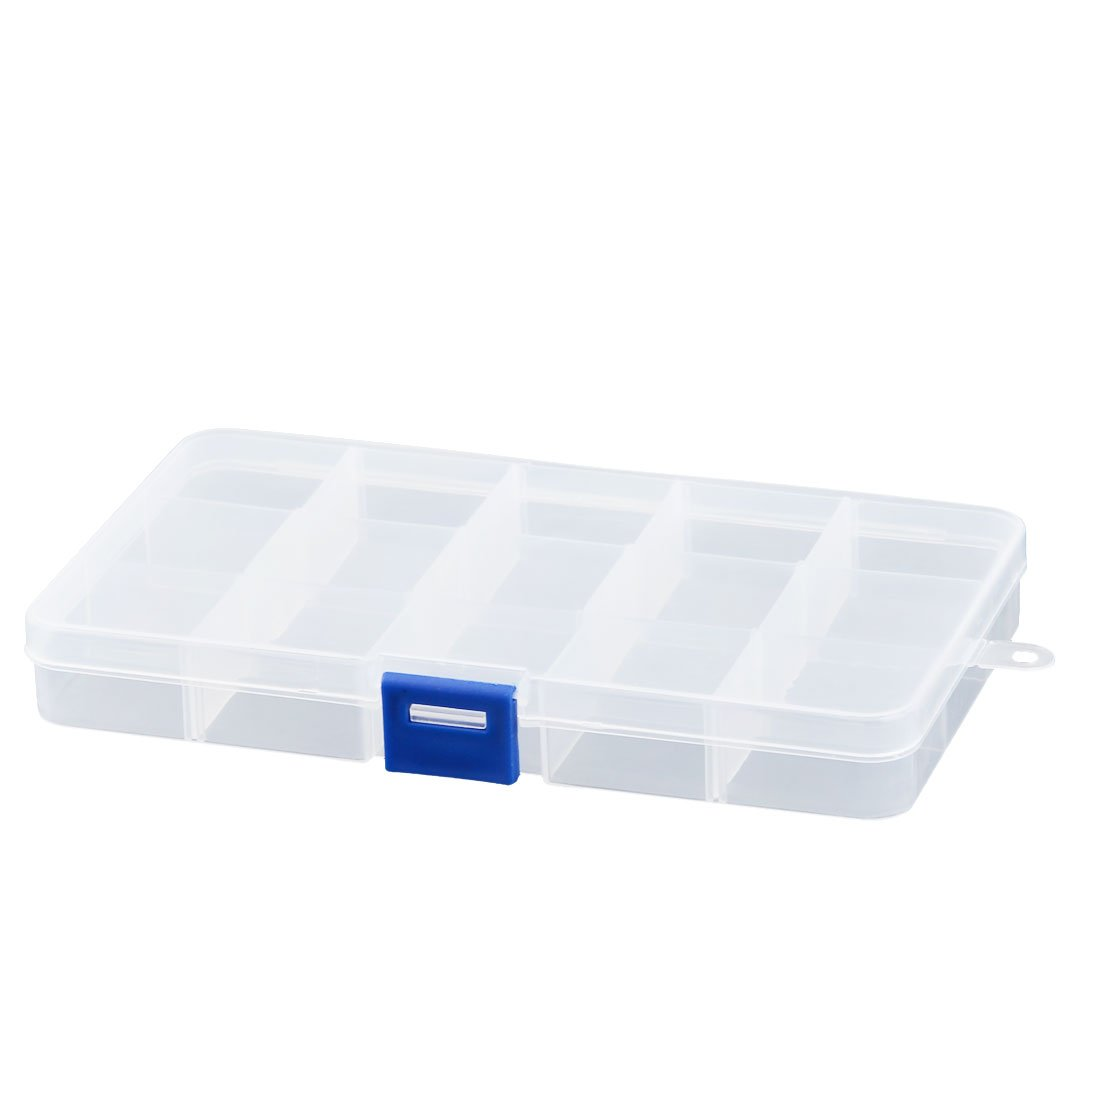 uxcell Plastic Rectangle Jewelry Earring 15 Compartments Storage Divider Case Container a16120800ux0167